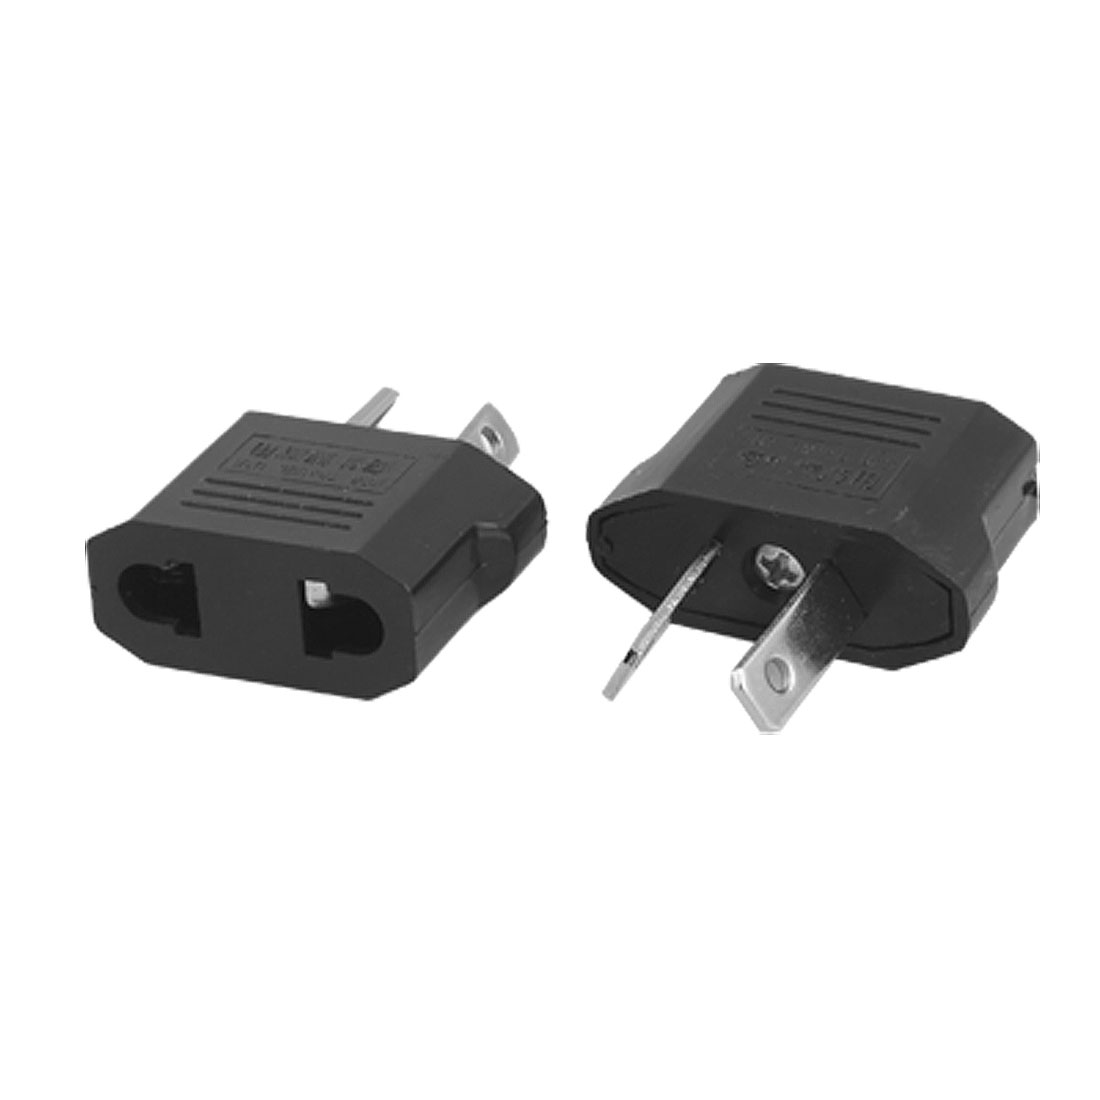 2 Pcs US EU to AU 2 Pin Plug Travel Adapter Converters AC 125V/250V